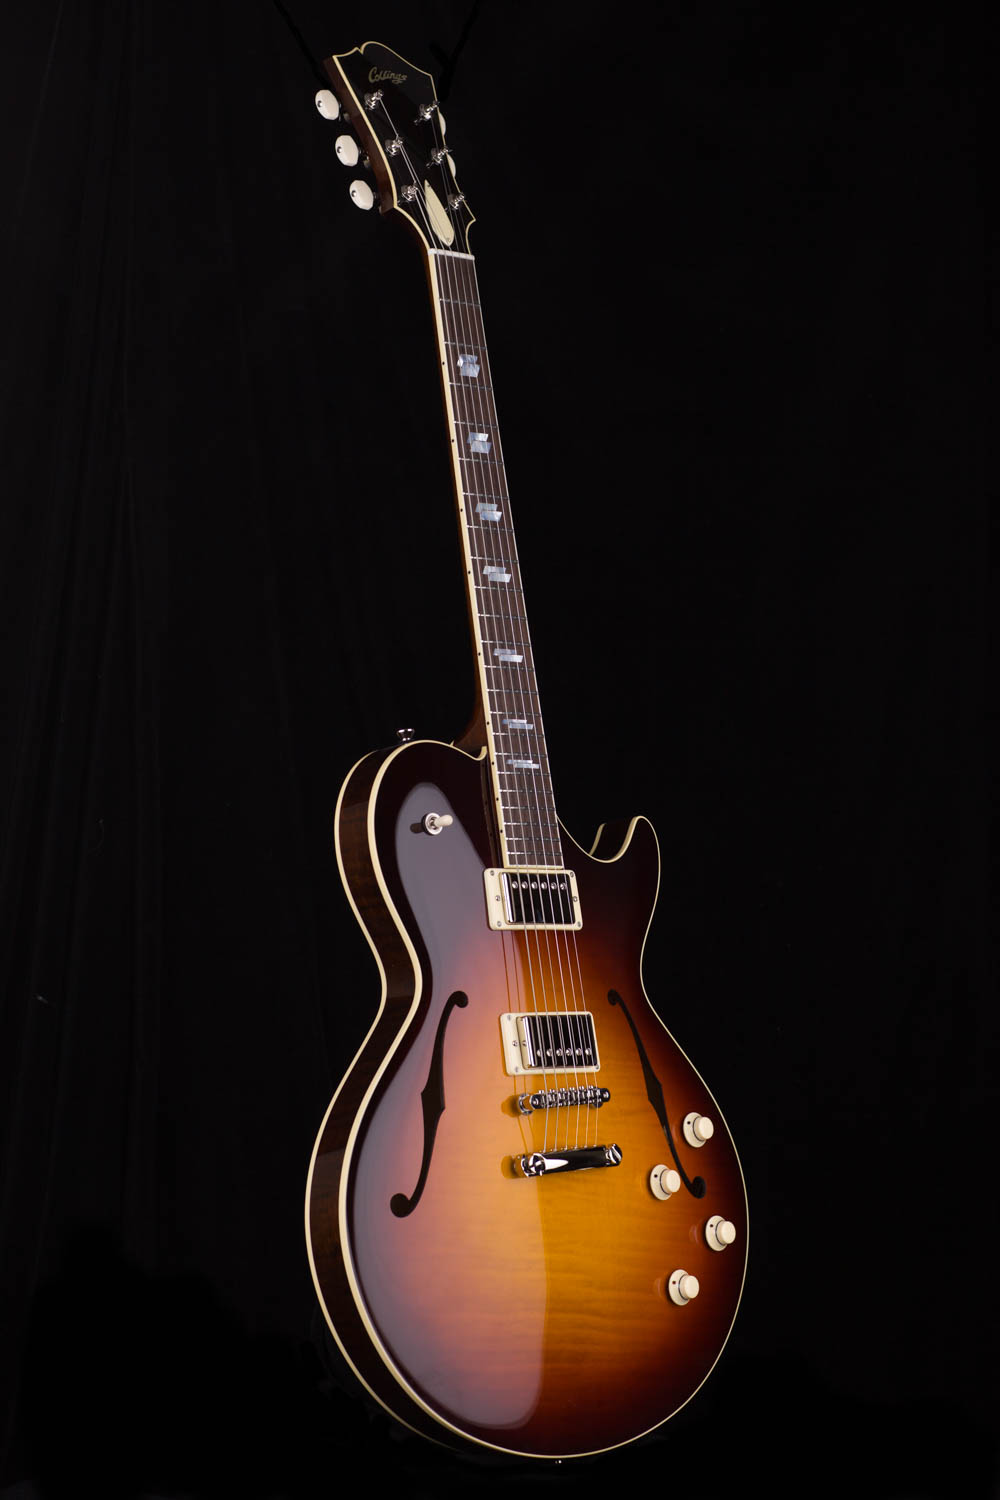 Collings Soco 16 Lc Deluxe Semi Hollow Electric Guitar